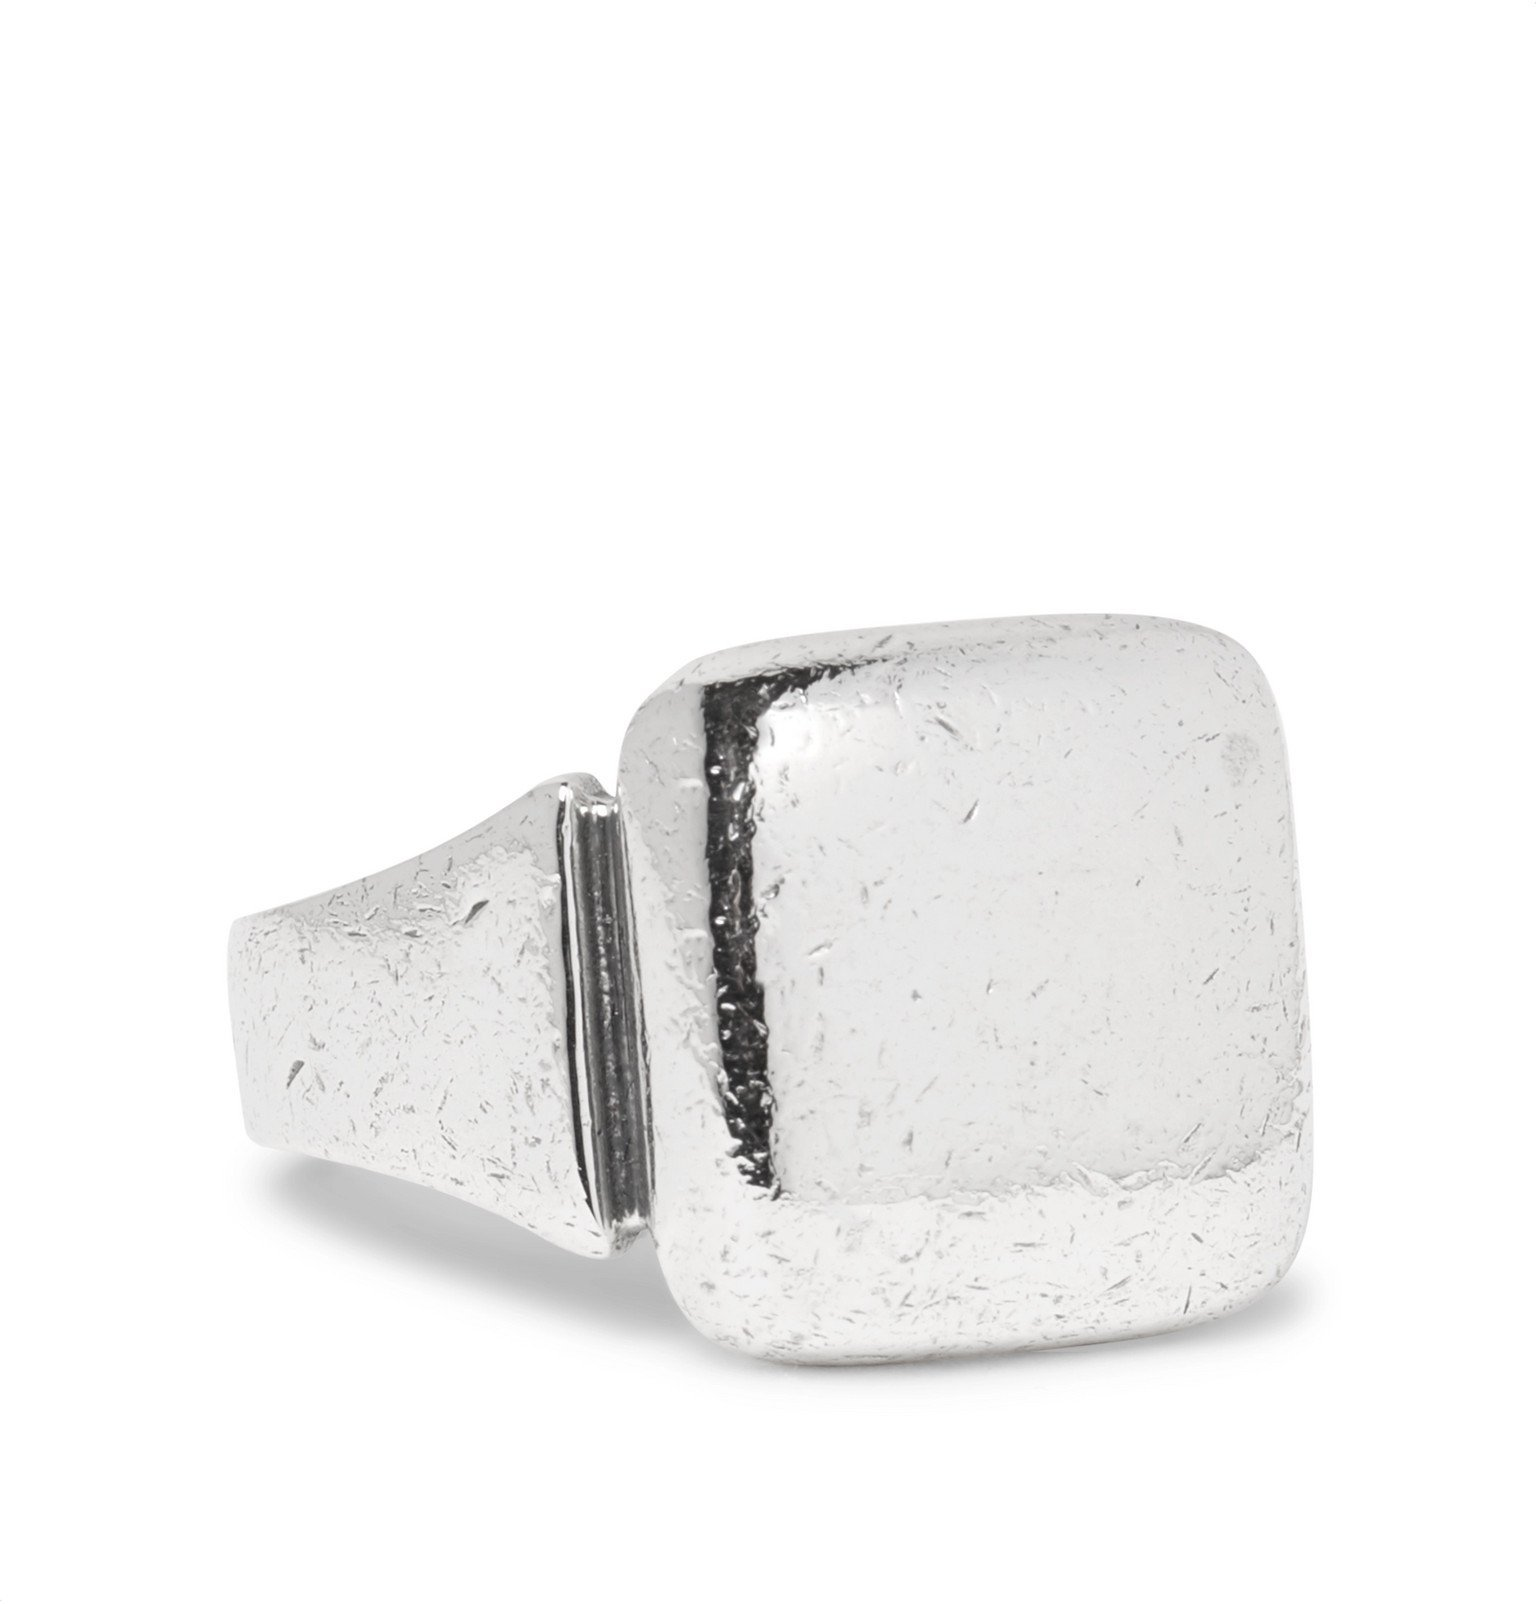 Bottega Veneta - Textured Sterling Silver Ring - Silver